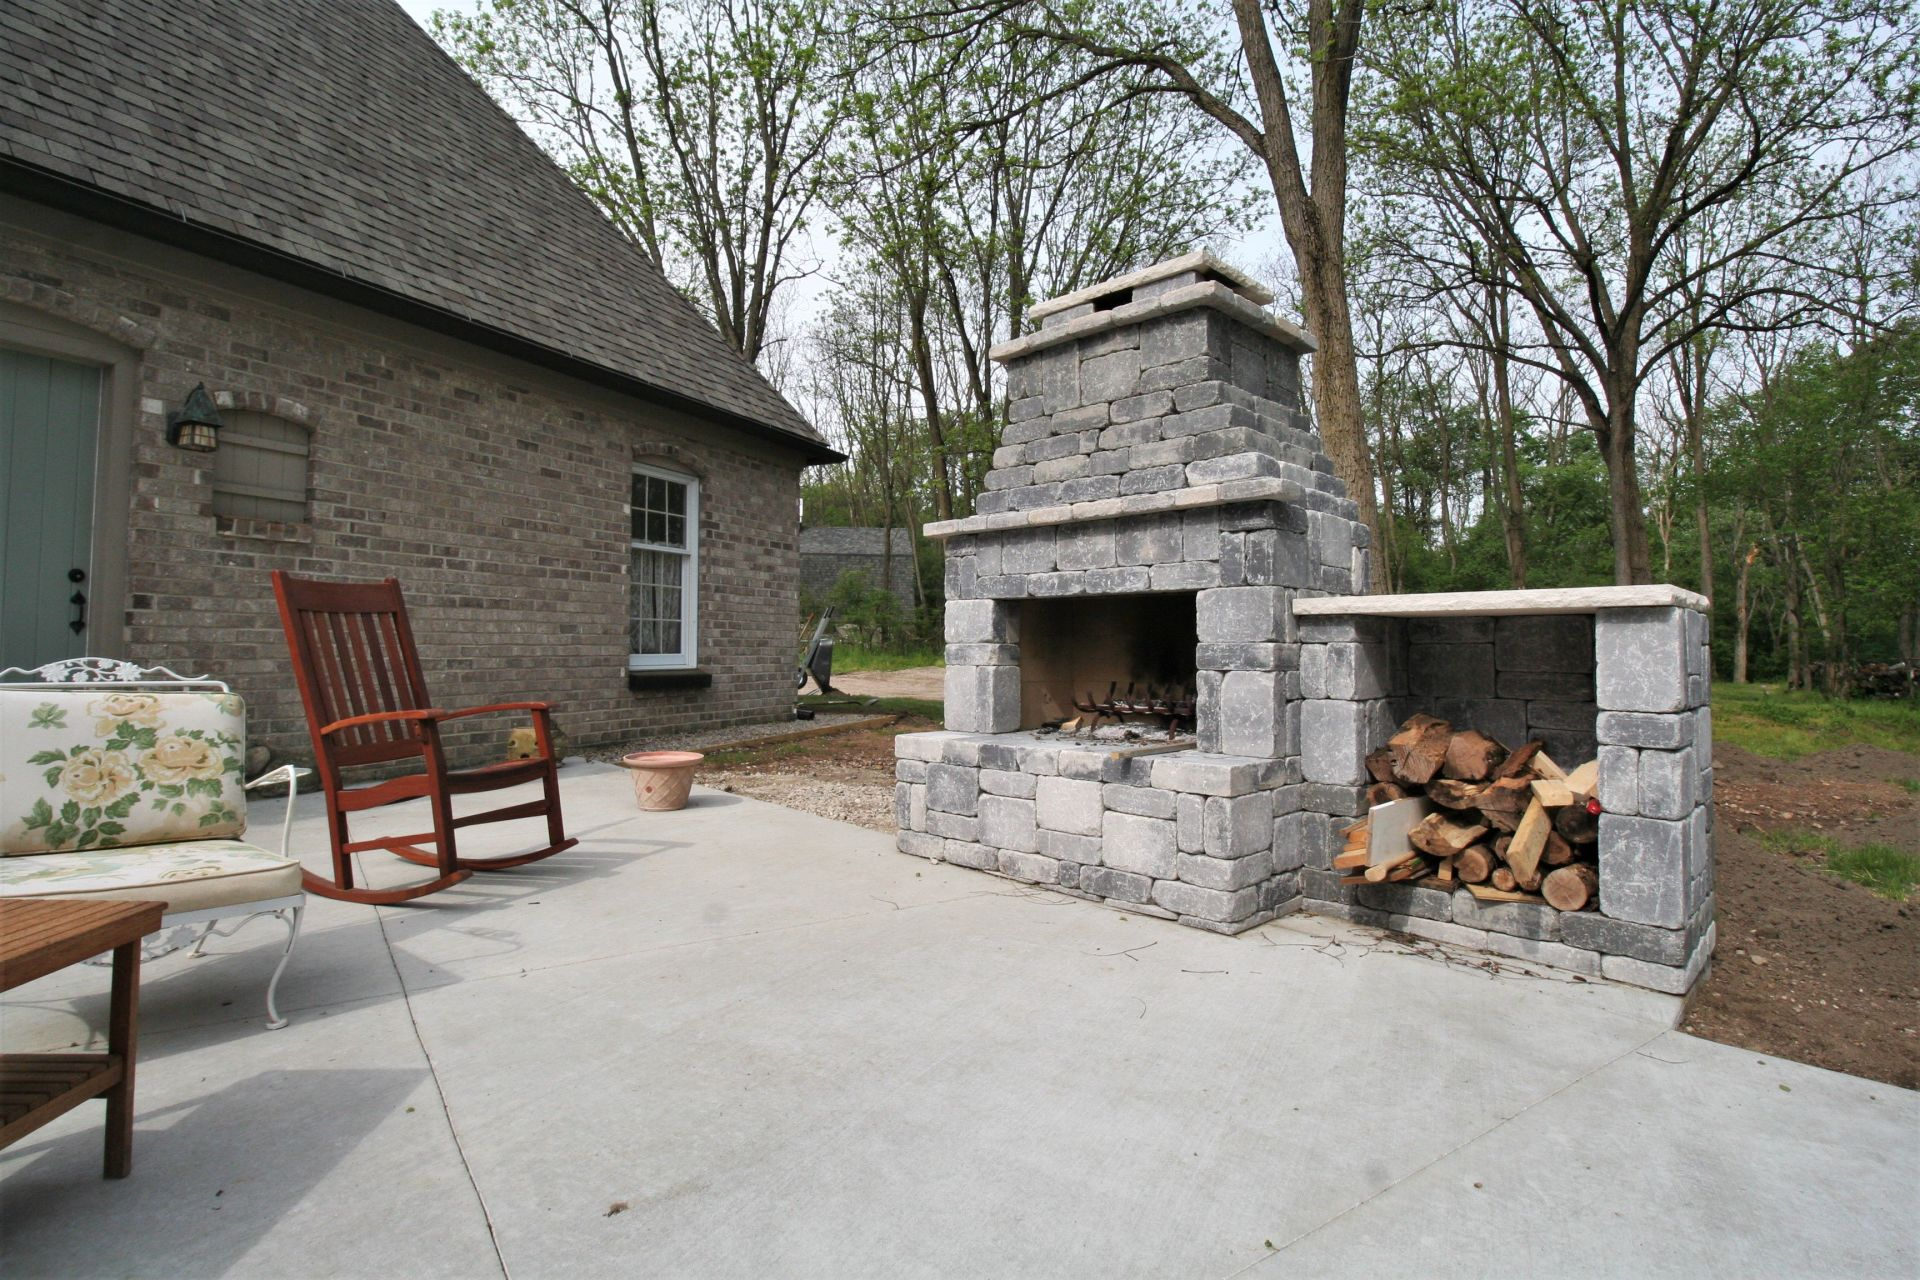 CONCRETE BLOCK OUTDOOR FIREPLACE on Outdoor Fireplace With Cinder Blocks id=58473